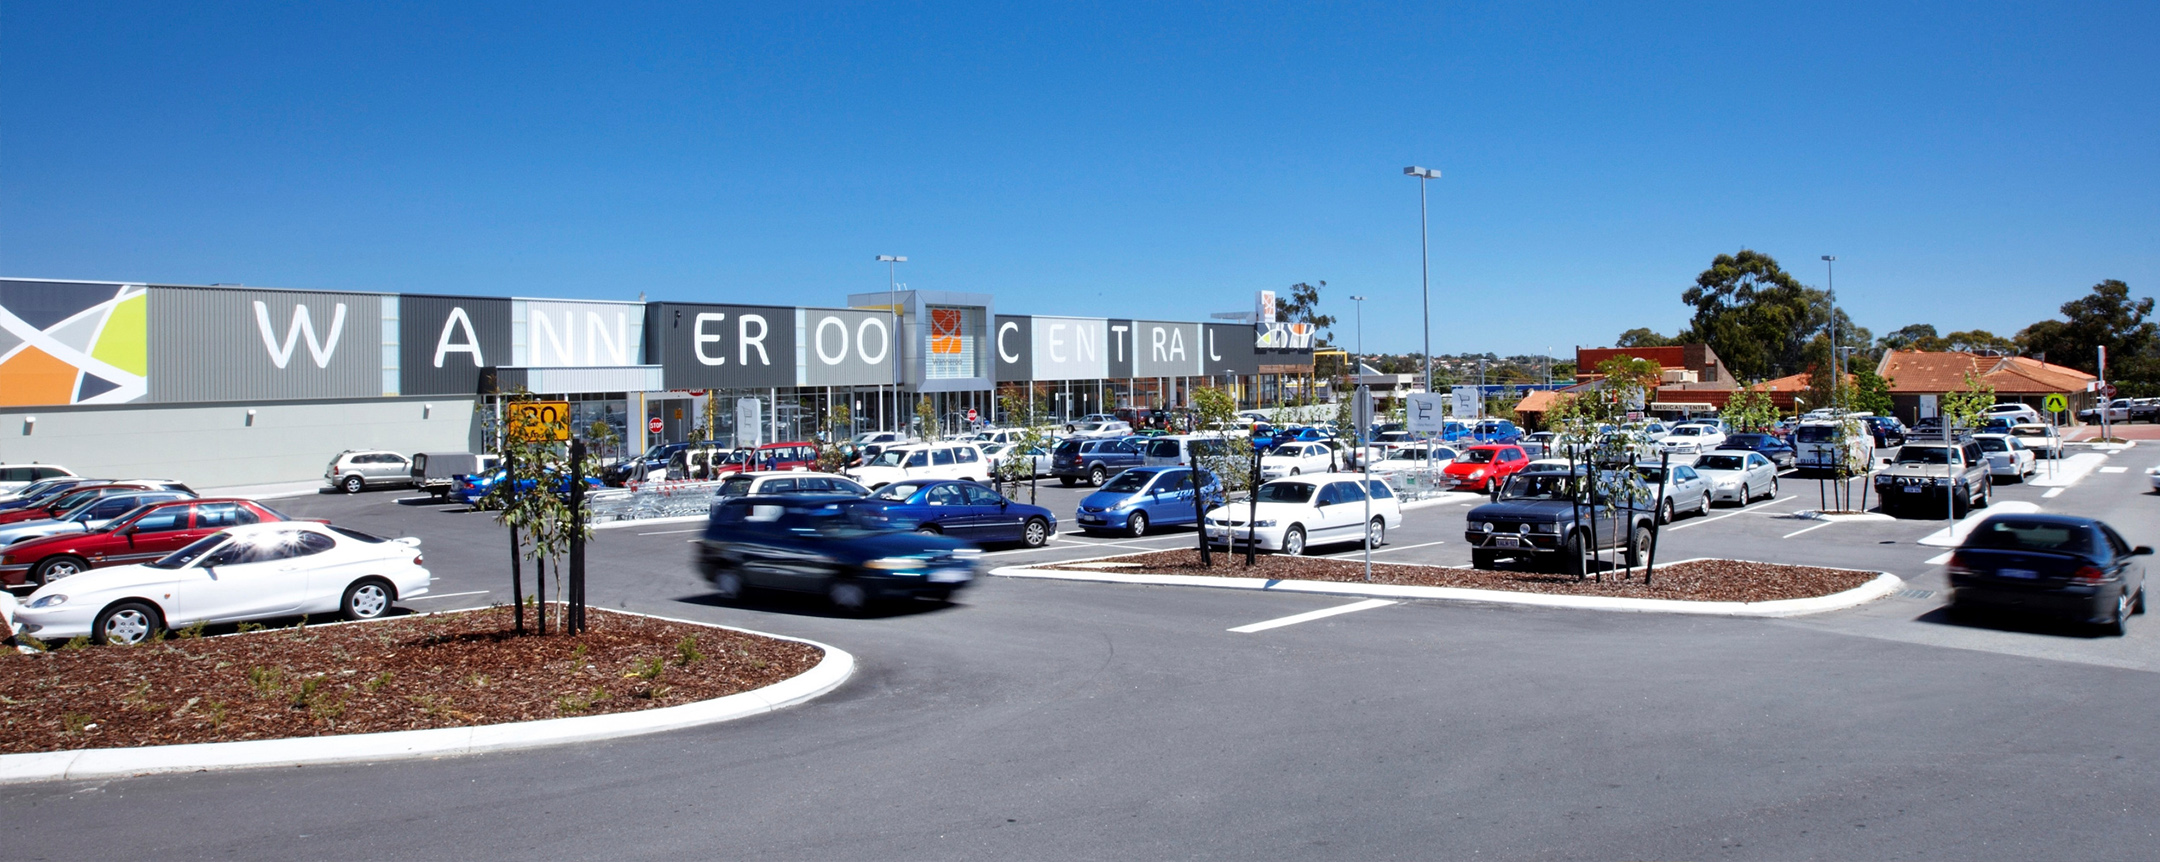 Updated wanneroo-central-web-content-1400x660-4